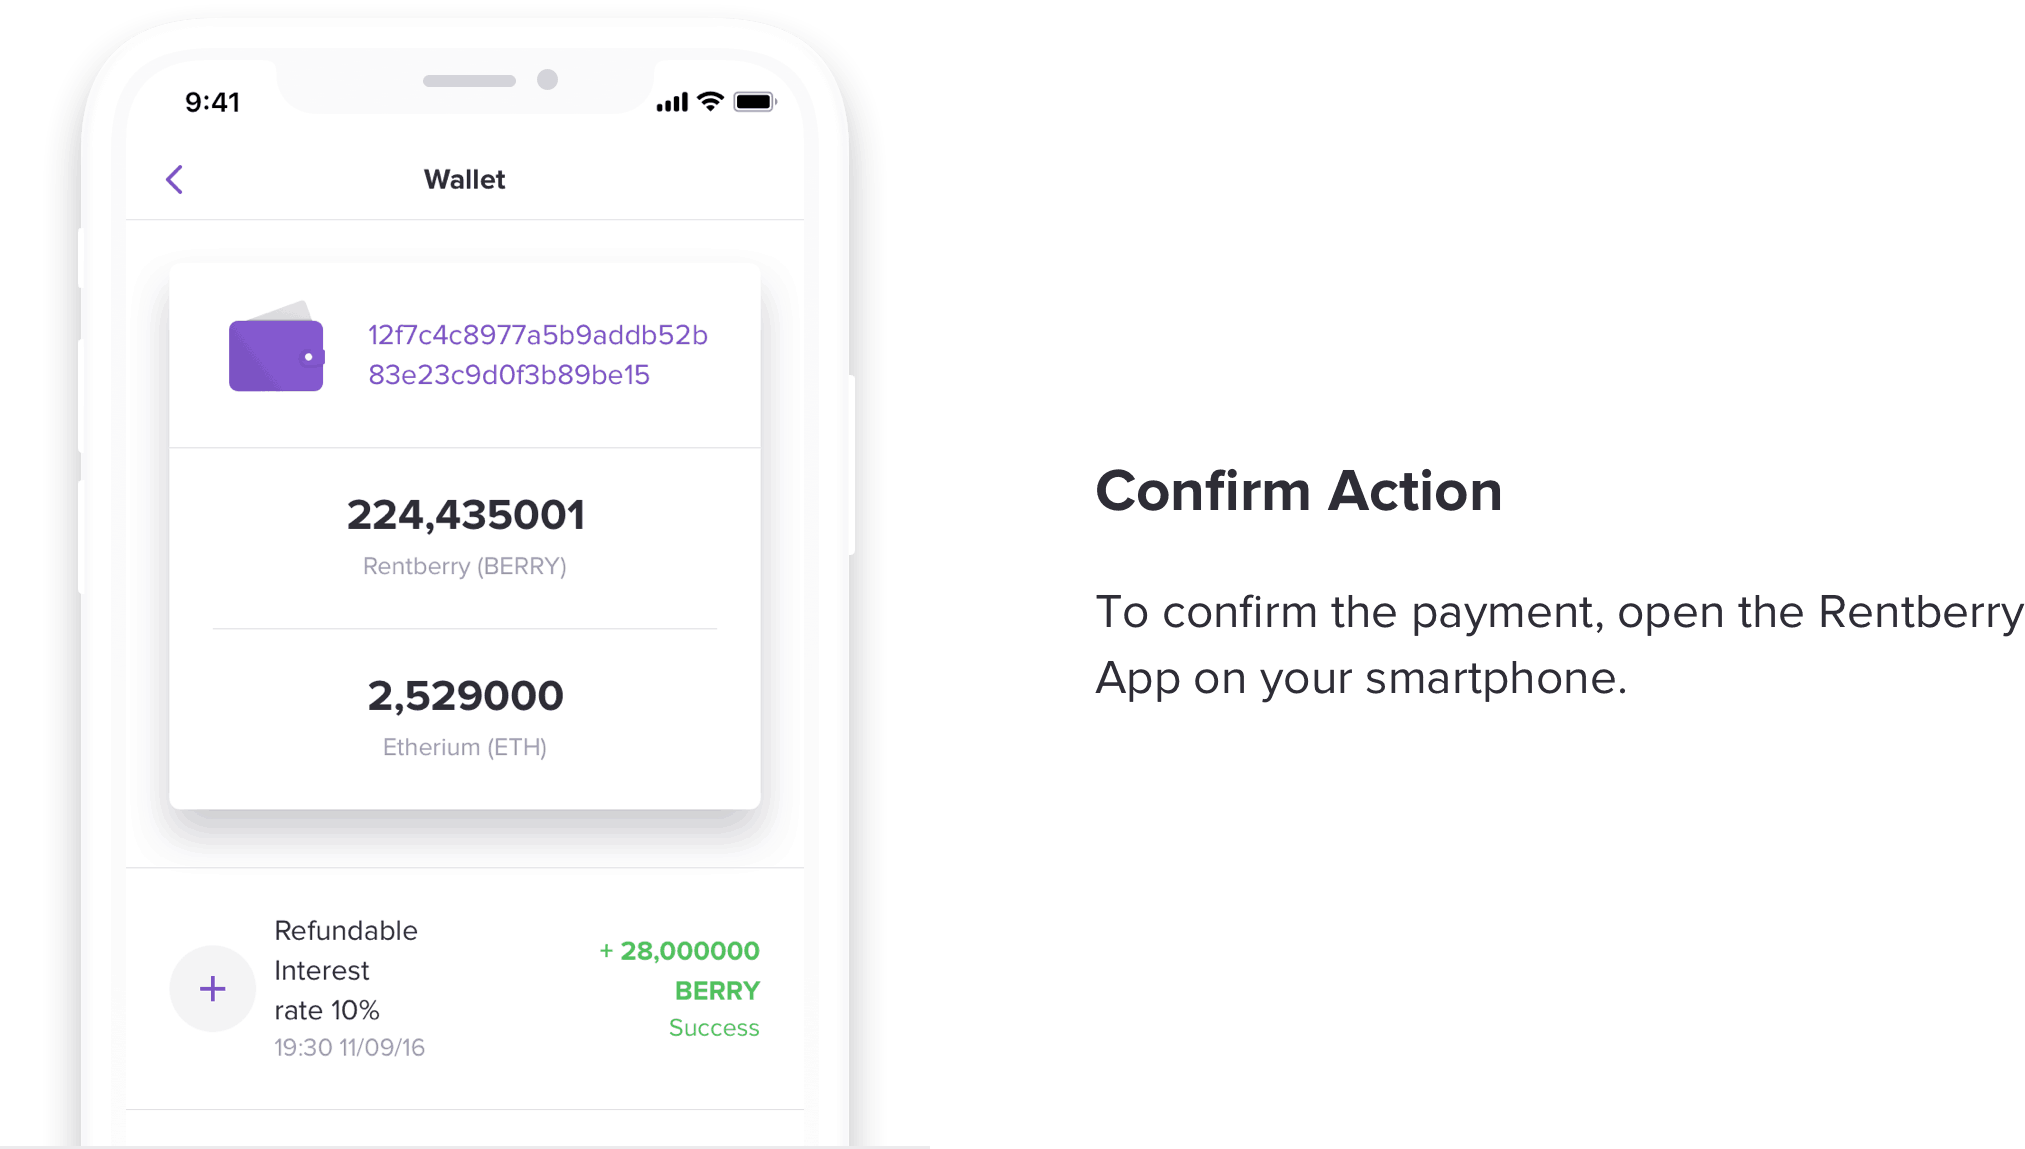 Confirm your transactions in Rentberry Wallet